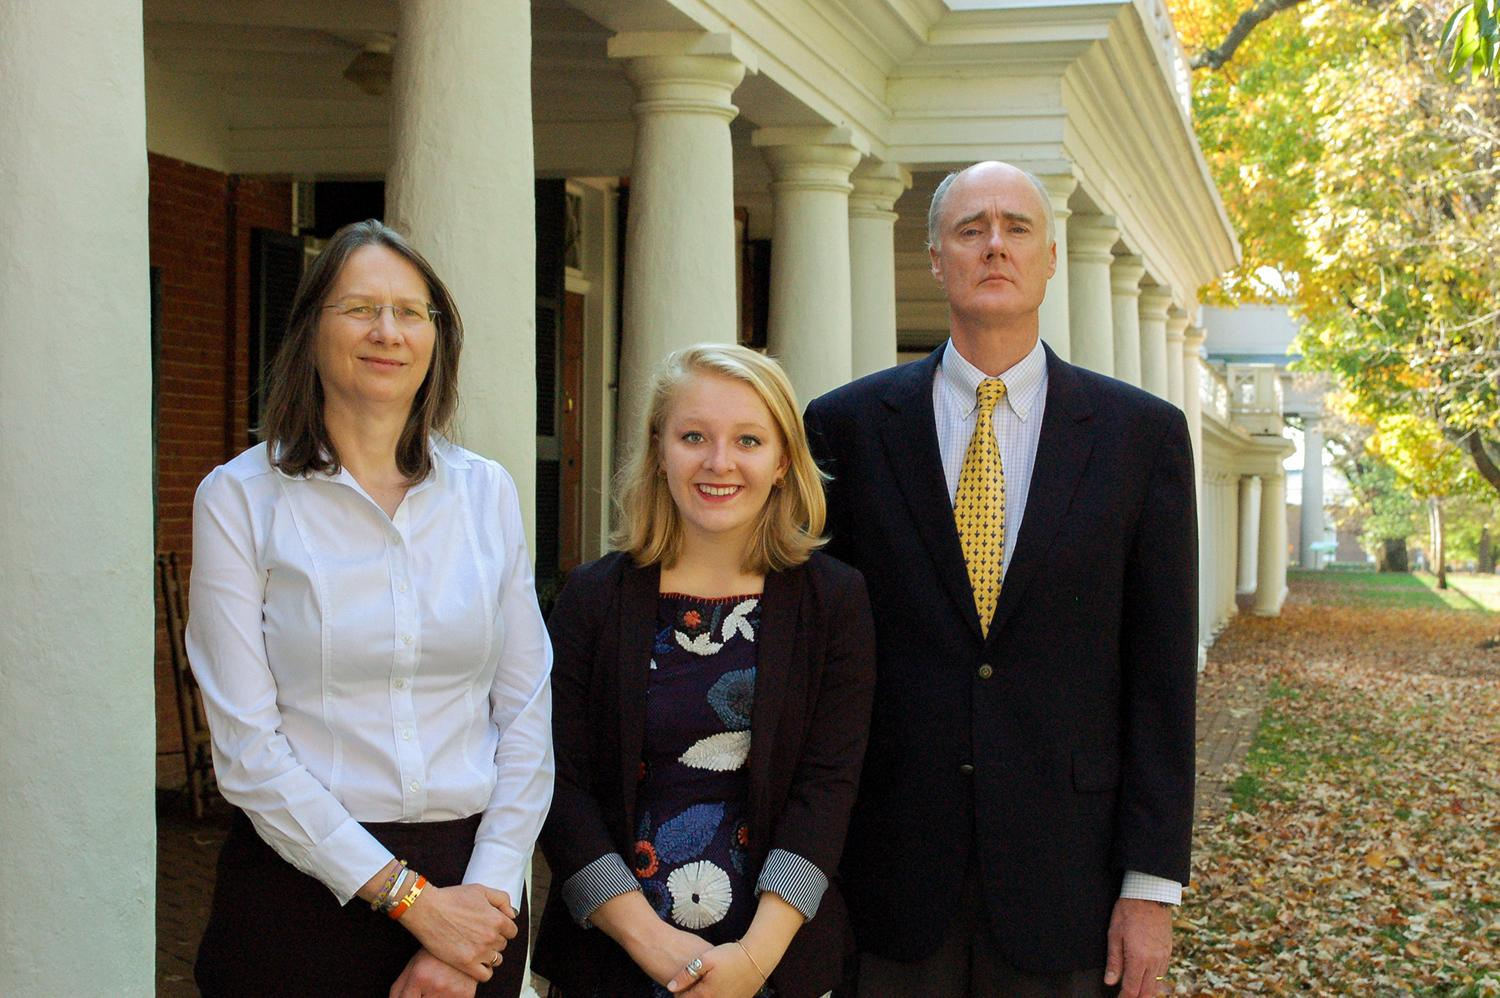 Sue Graham, left, and John Graham stand with Claire Romaine, the inaugural winner of a memorial award named after their late daughter, Hannah. The award will support Romaine's public health research in Rwanda.